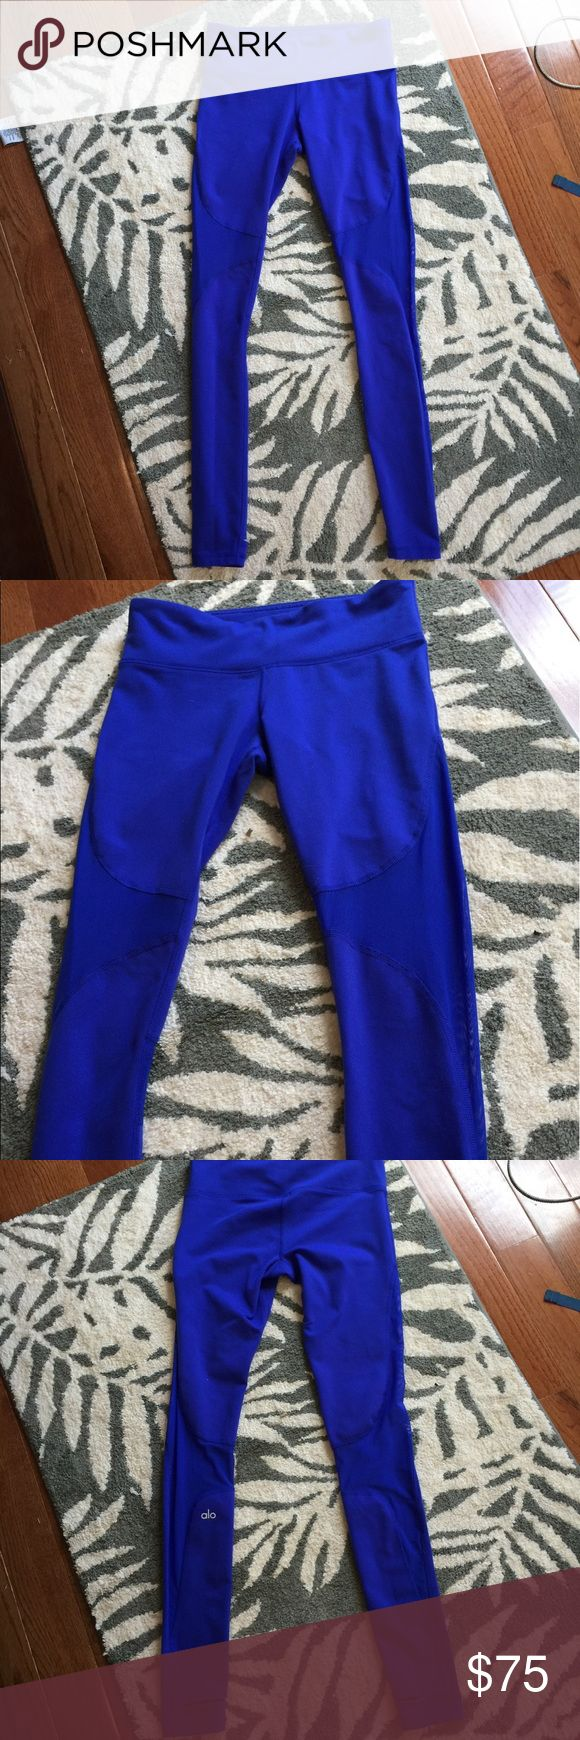 ALO yoga Coast Legging ALO yoga coast legging size S. Like new condition. Only worn once for an hour. Color of pants best depicted in the actual photo of yoga pants. Model only shown for fit! Make me an offer :) ALO Yoga Pants Leggings